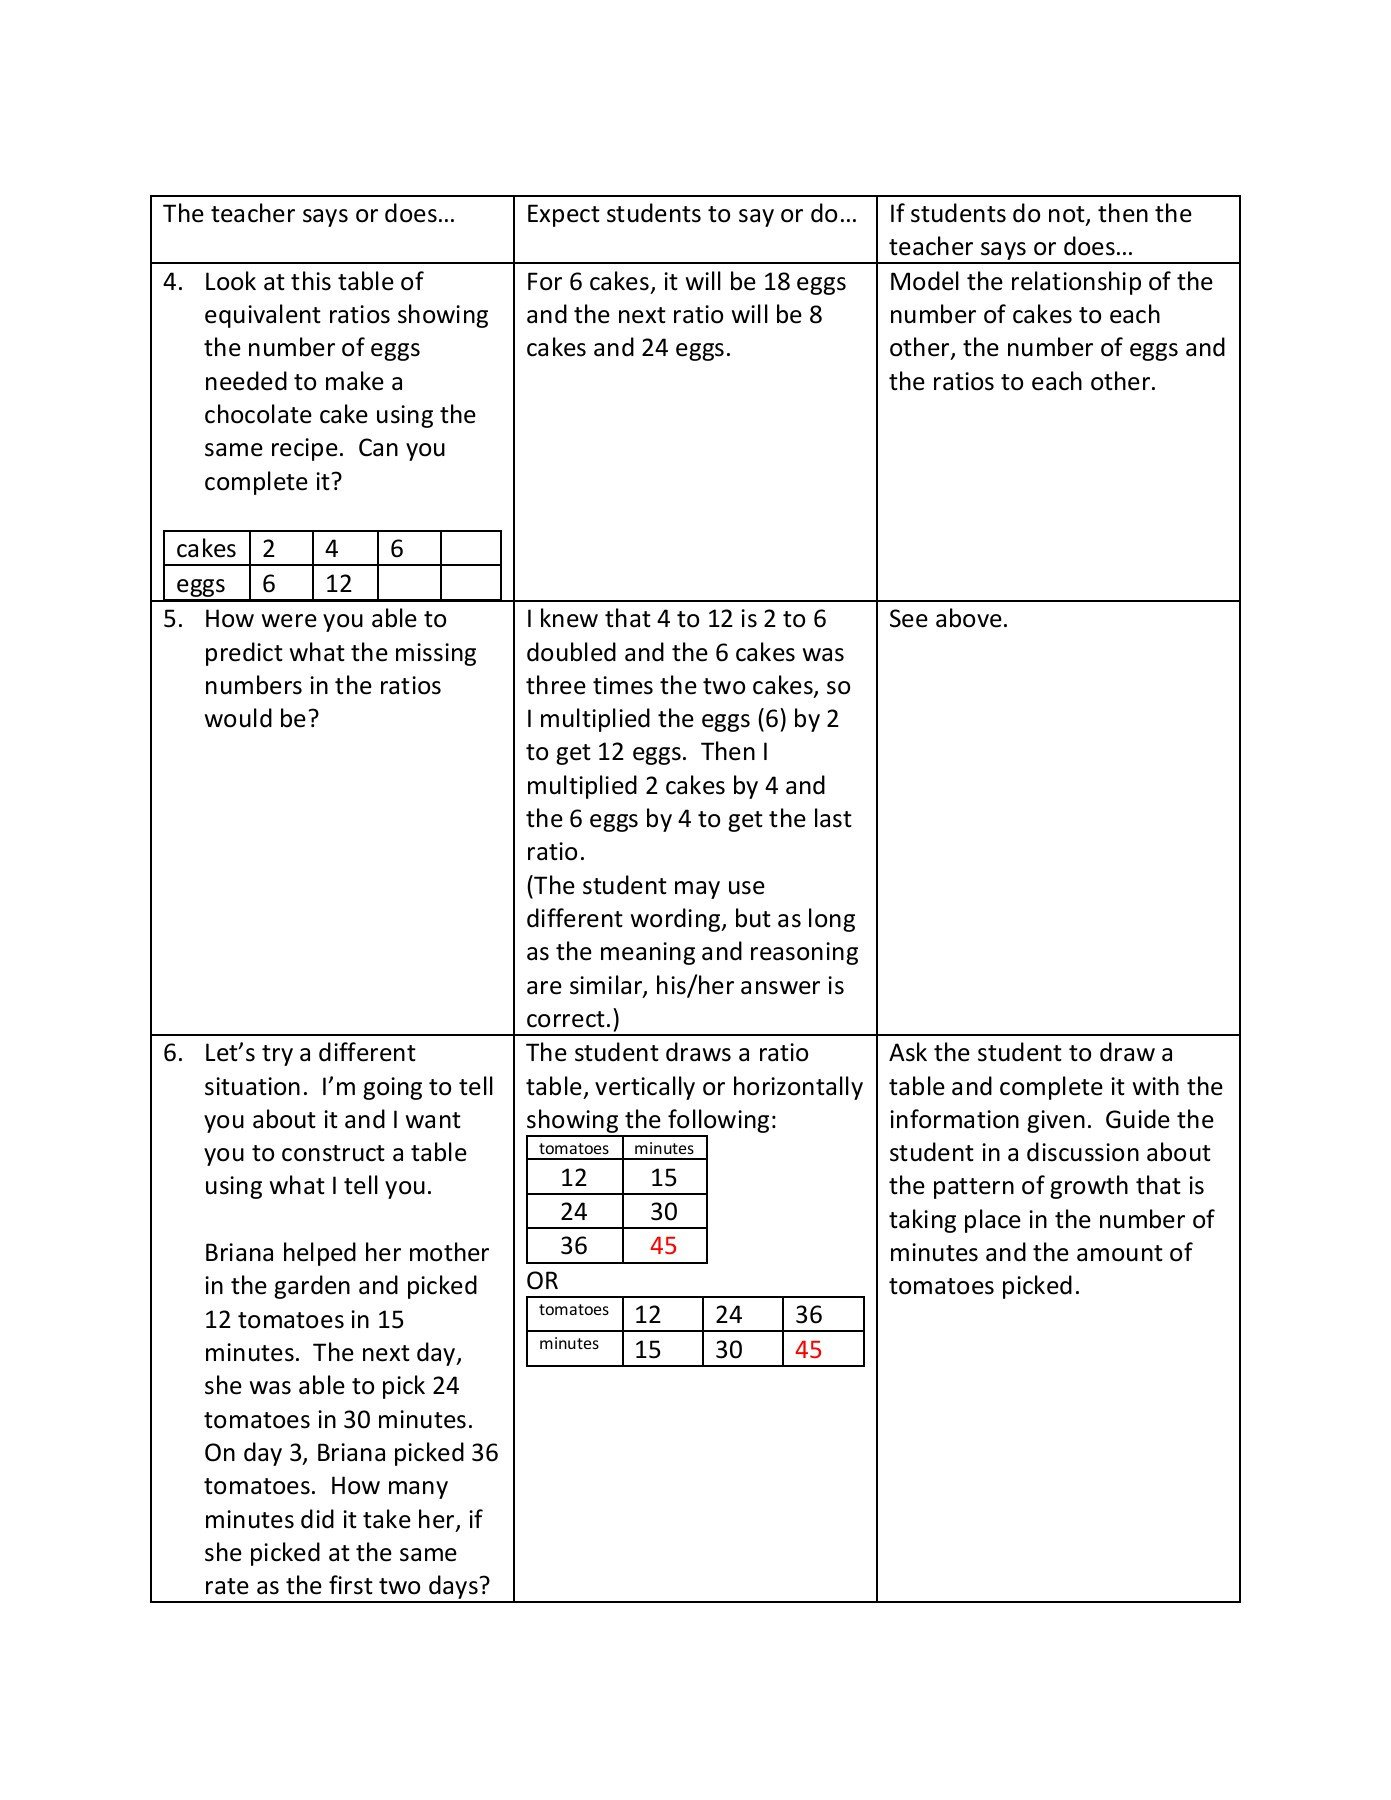 Comparing Ratios Using Tables Worksheet Make Tables Of Equivalent Ratios Math Interventions Pages